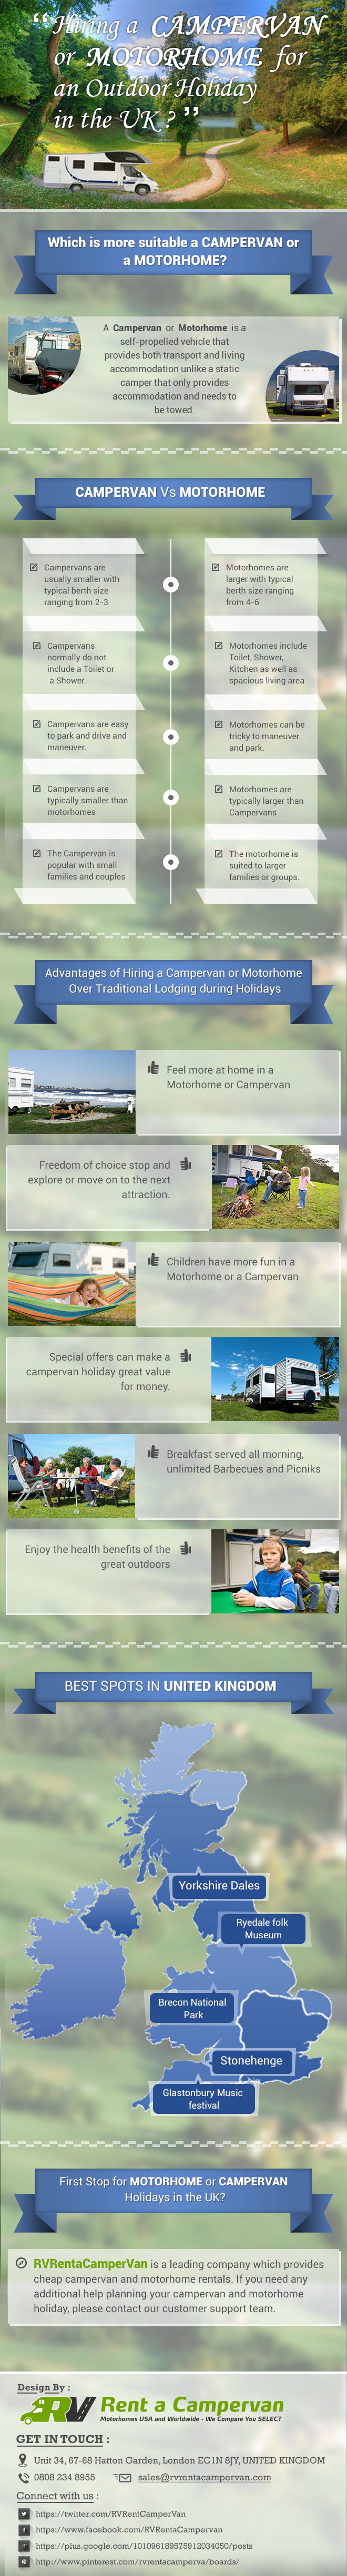 Campervan Rental UK